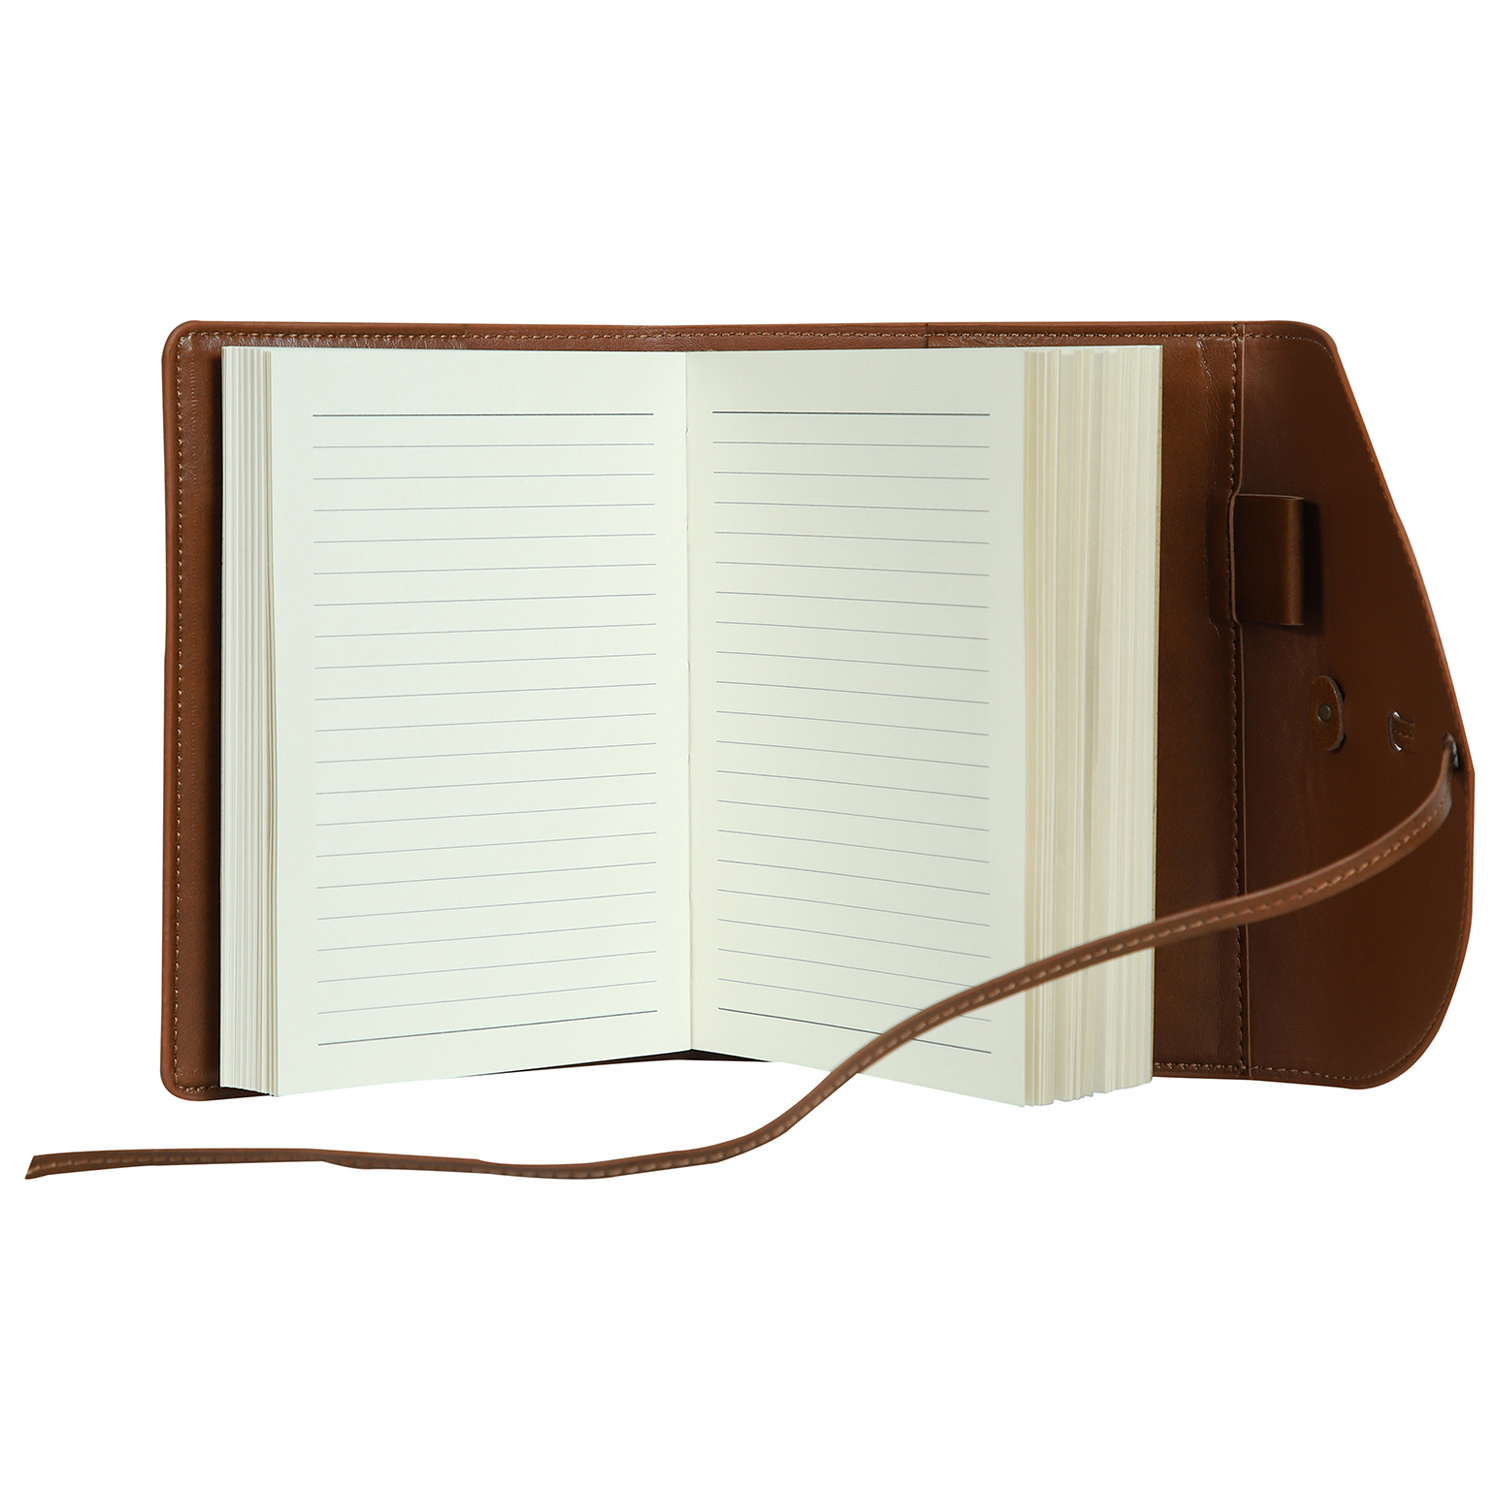 Vintage Notes - A6 Size - Notebook Diary with Flap